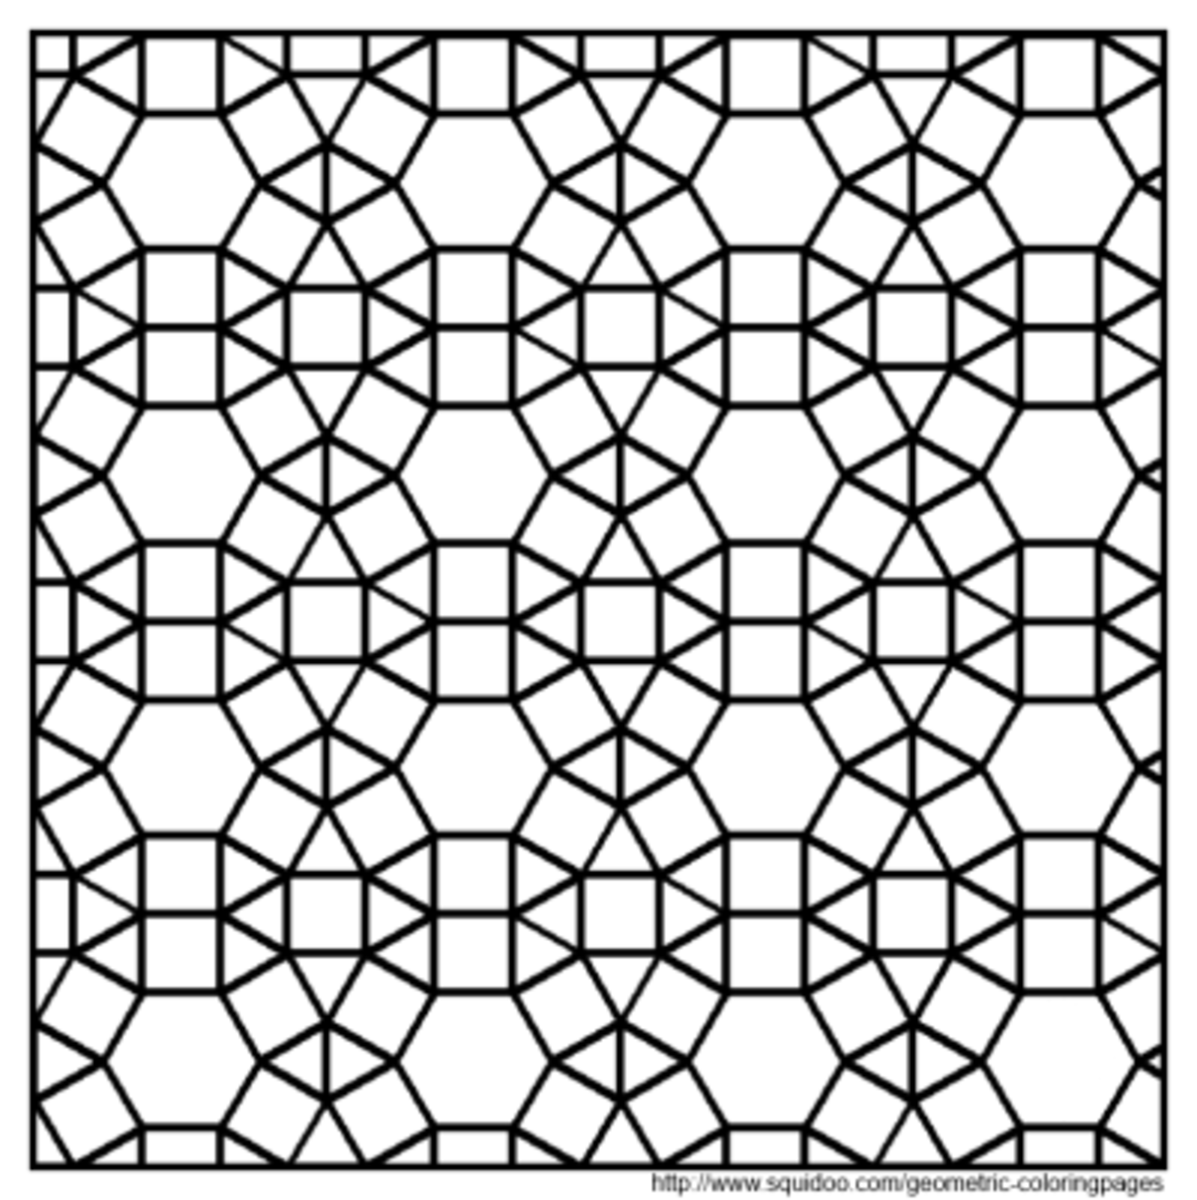 printable tessellation patterns to color geometric coloring pages to patterns tessellation printable color